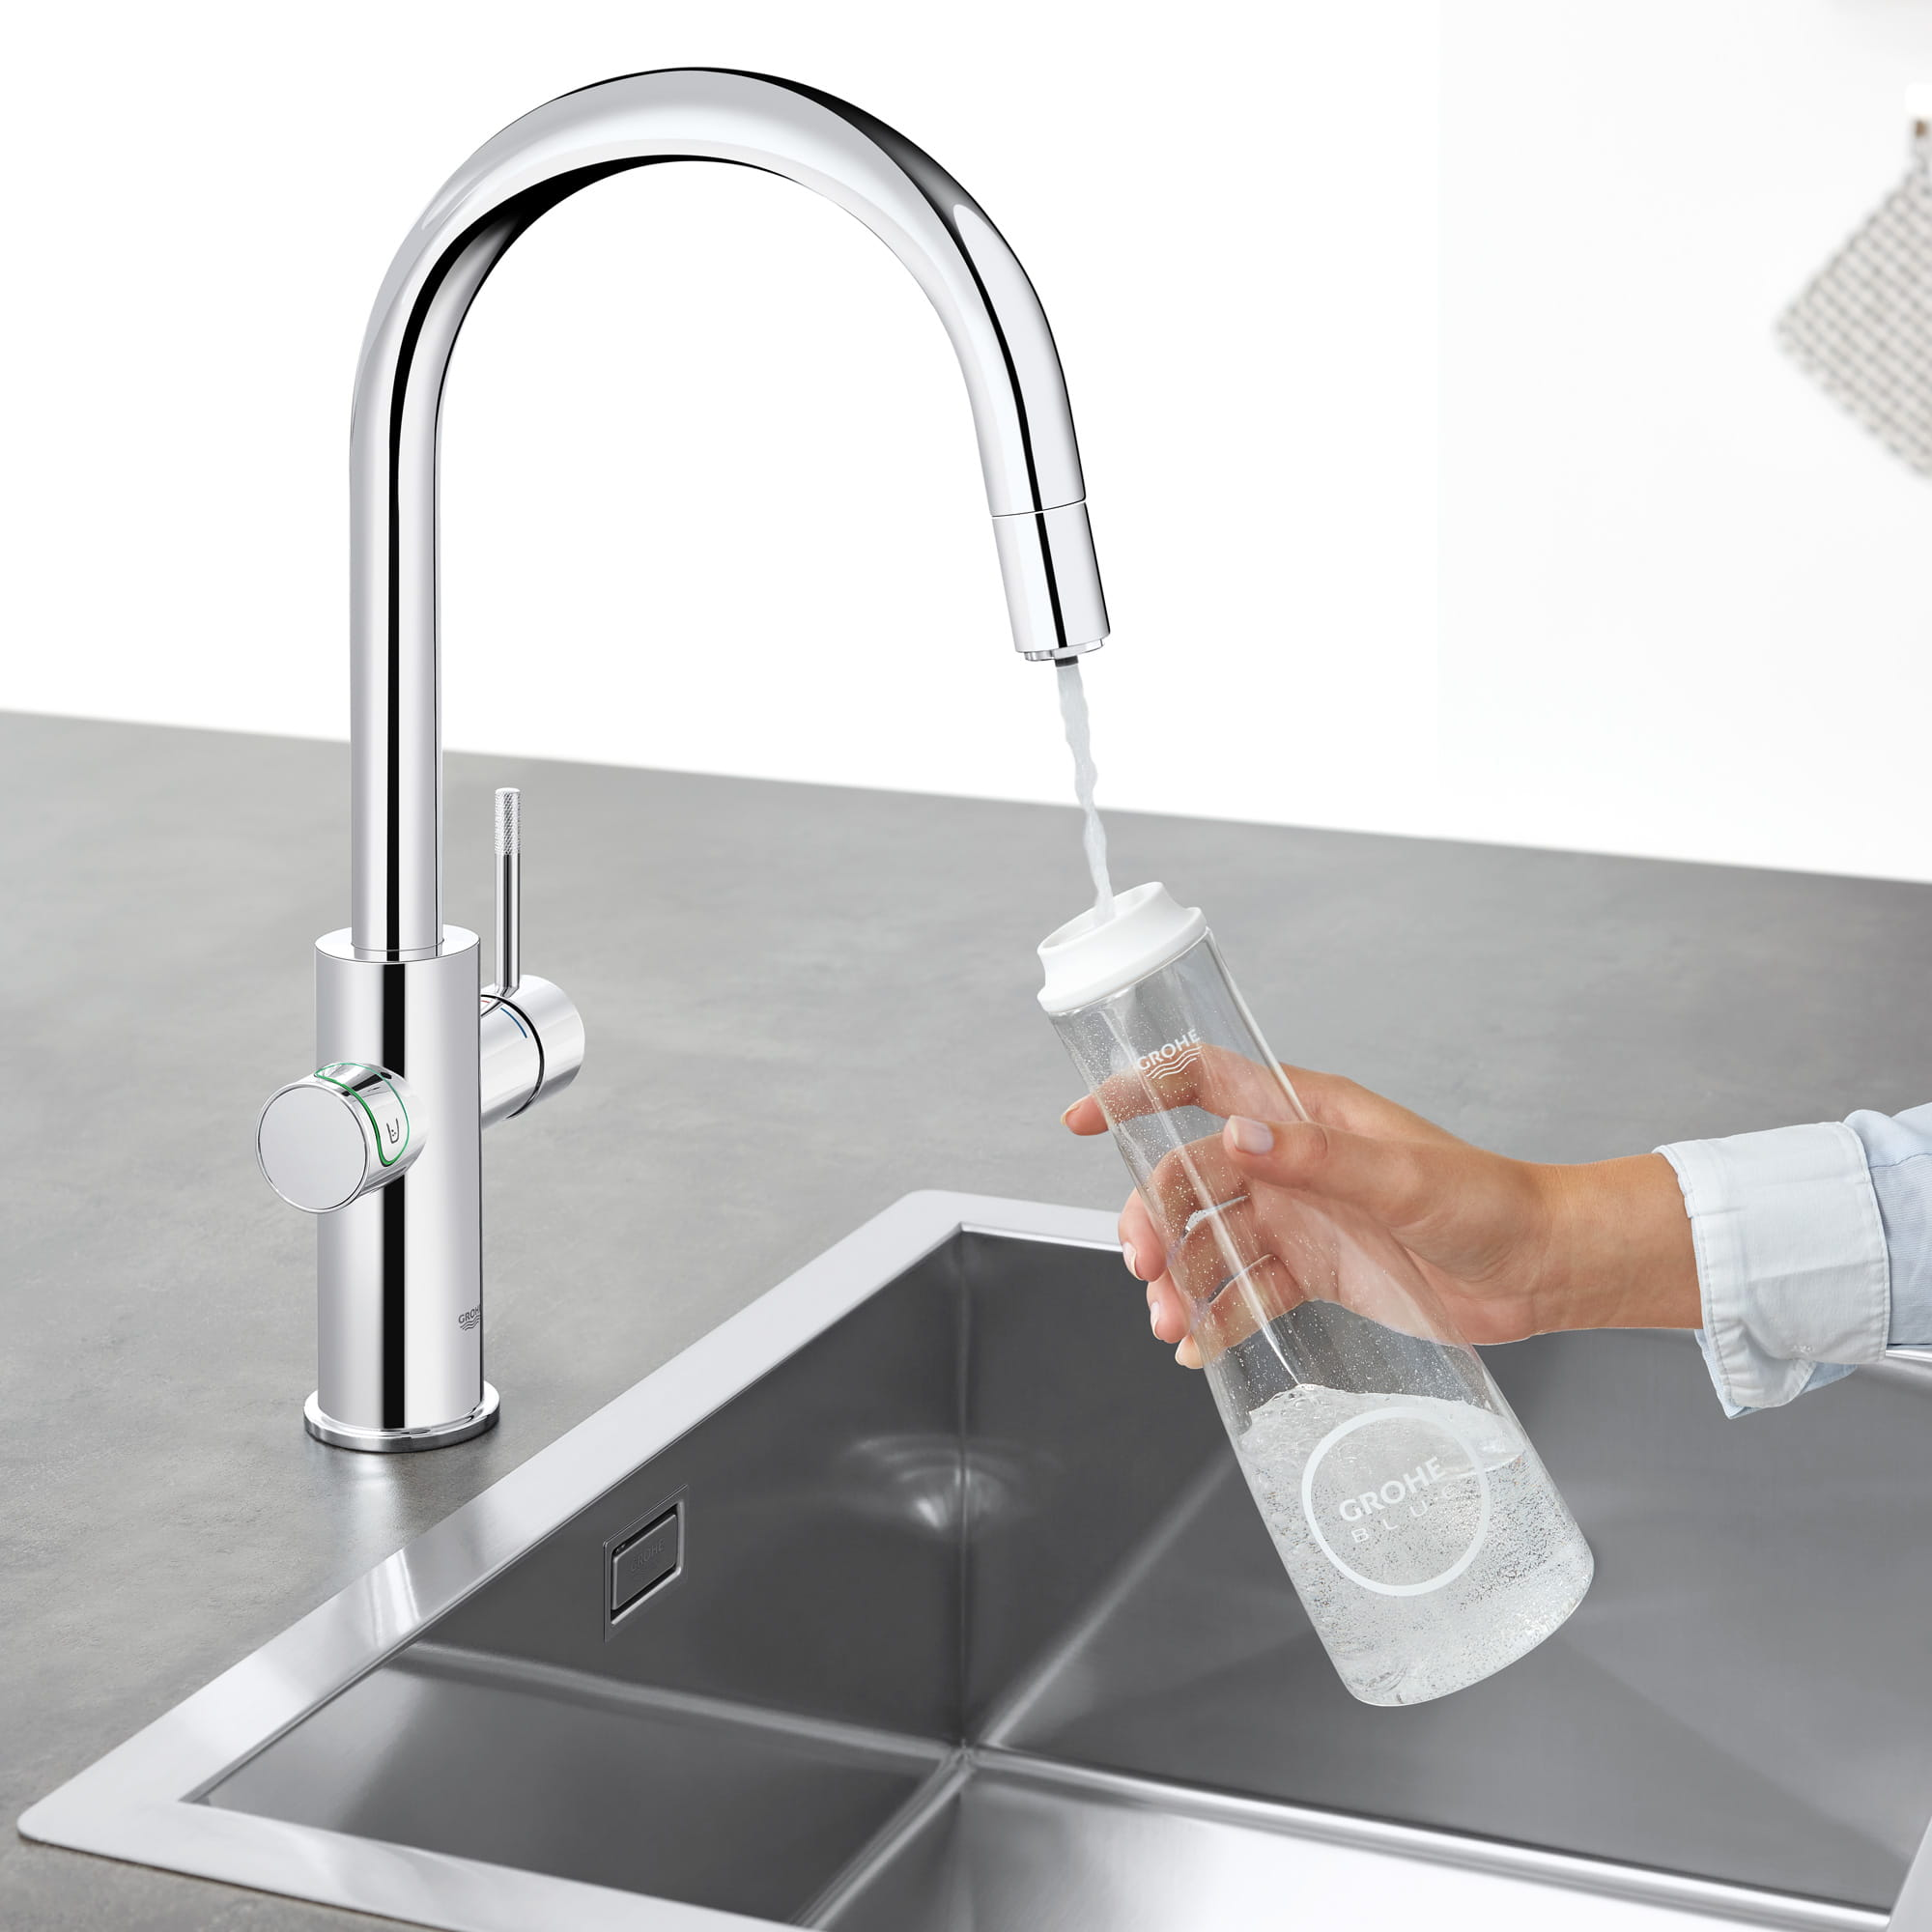 GROHE Blue Chilled and Sparkling Kitchen Faucet